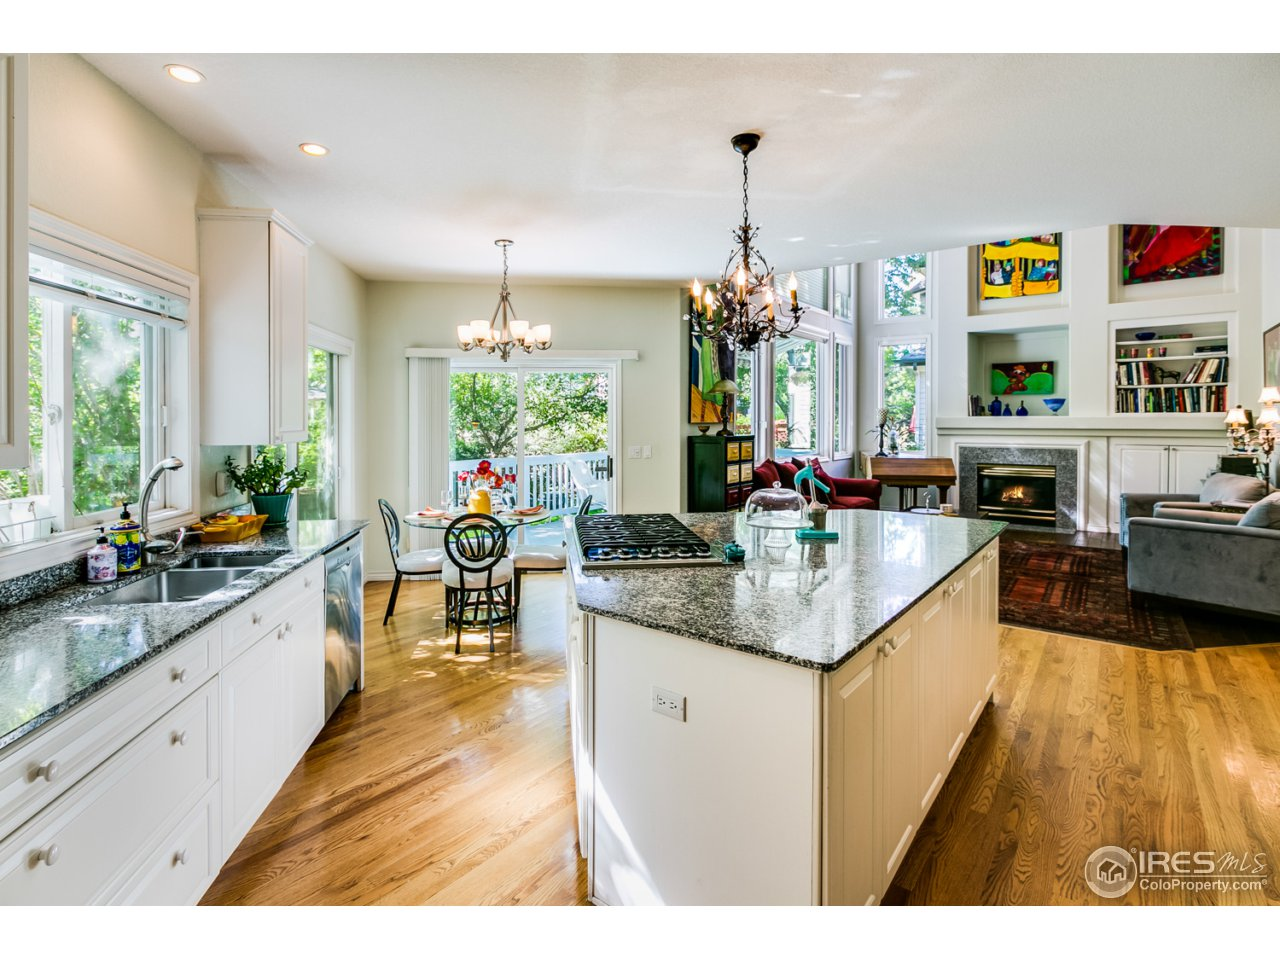 Chef's kitchen with granite counters